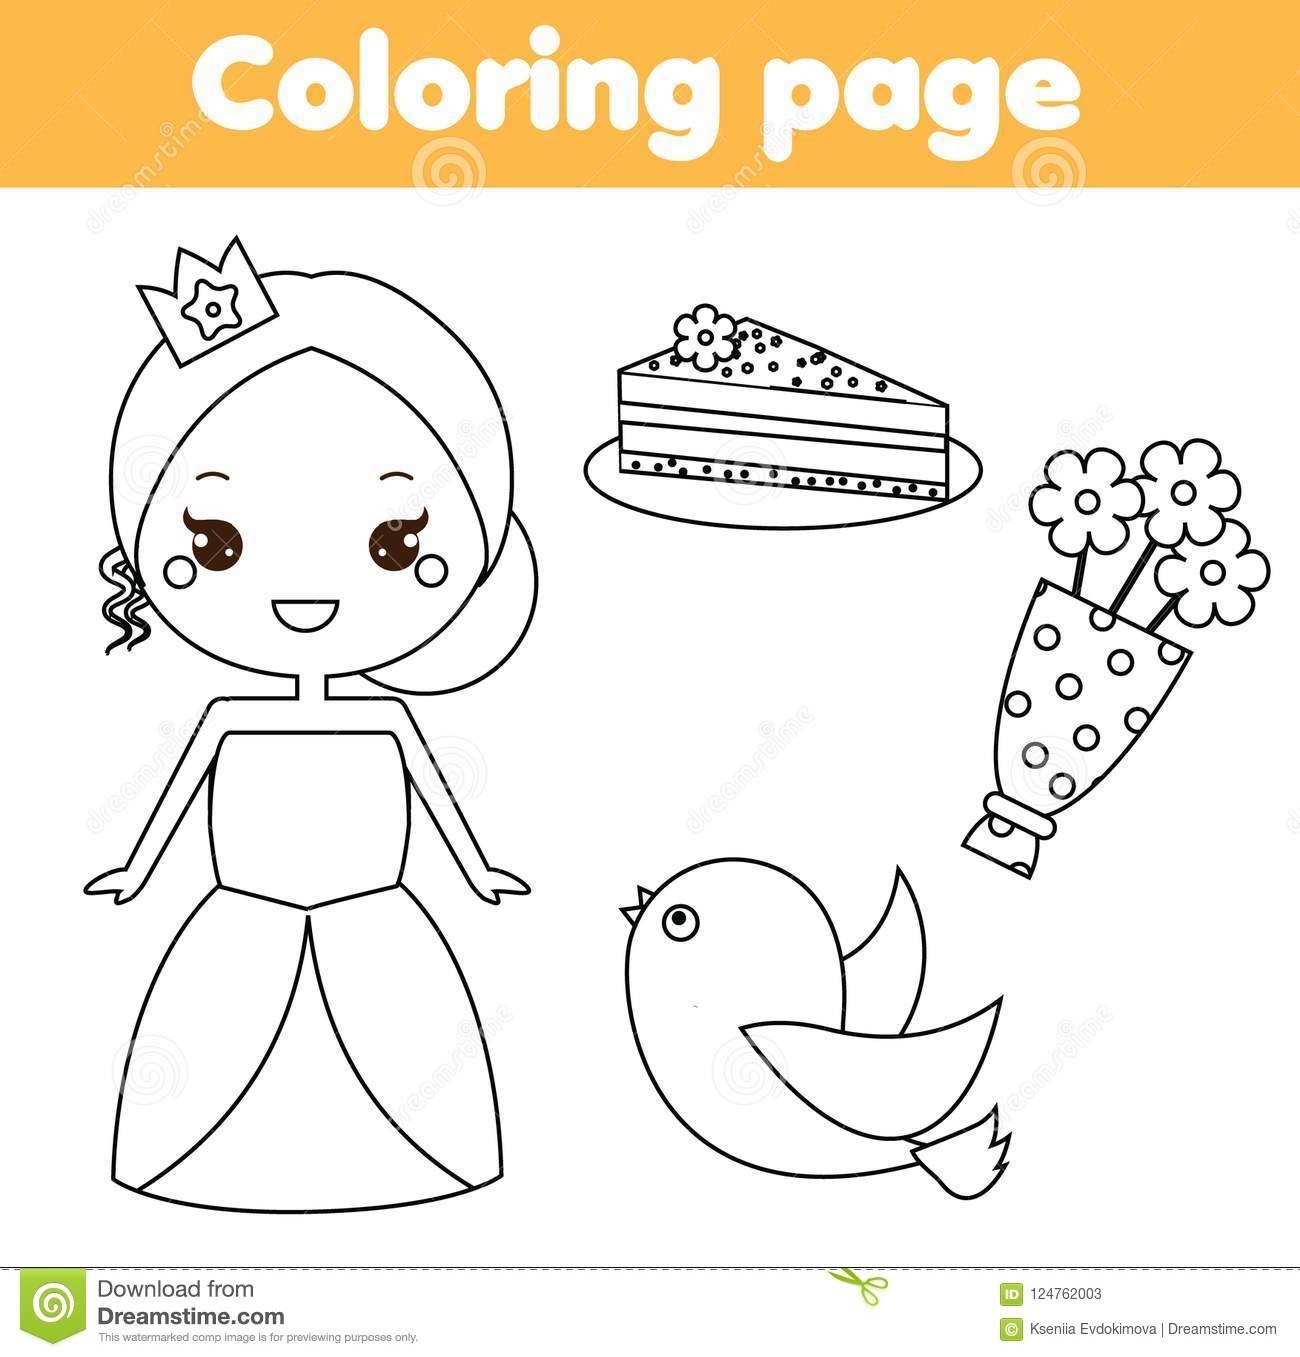 Coloring Page Educational Children Game Princess Theme